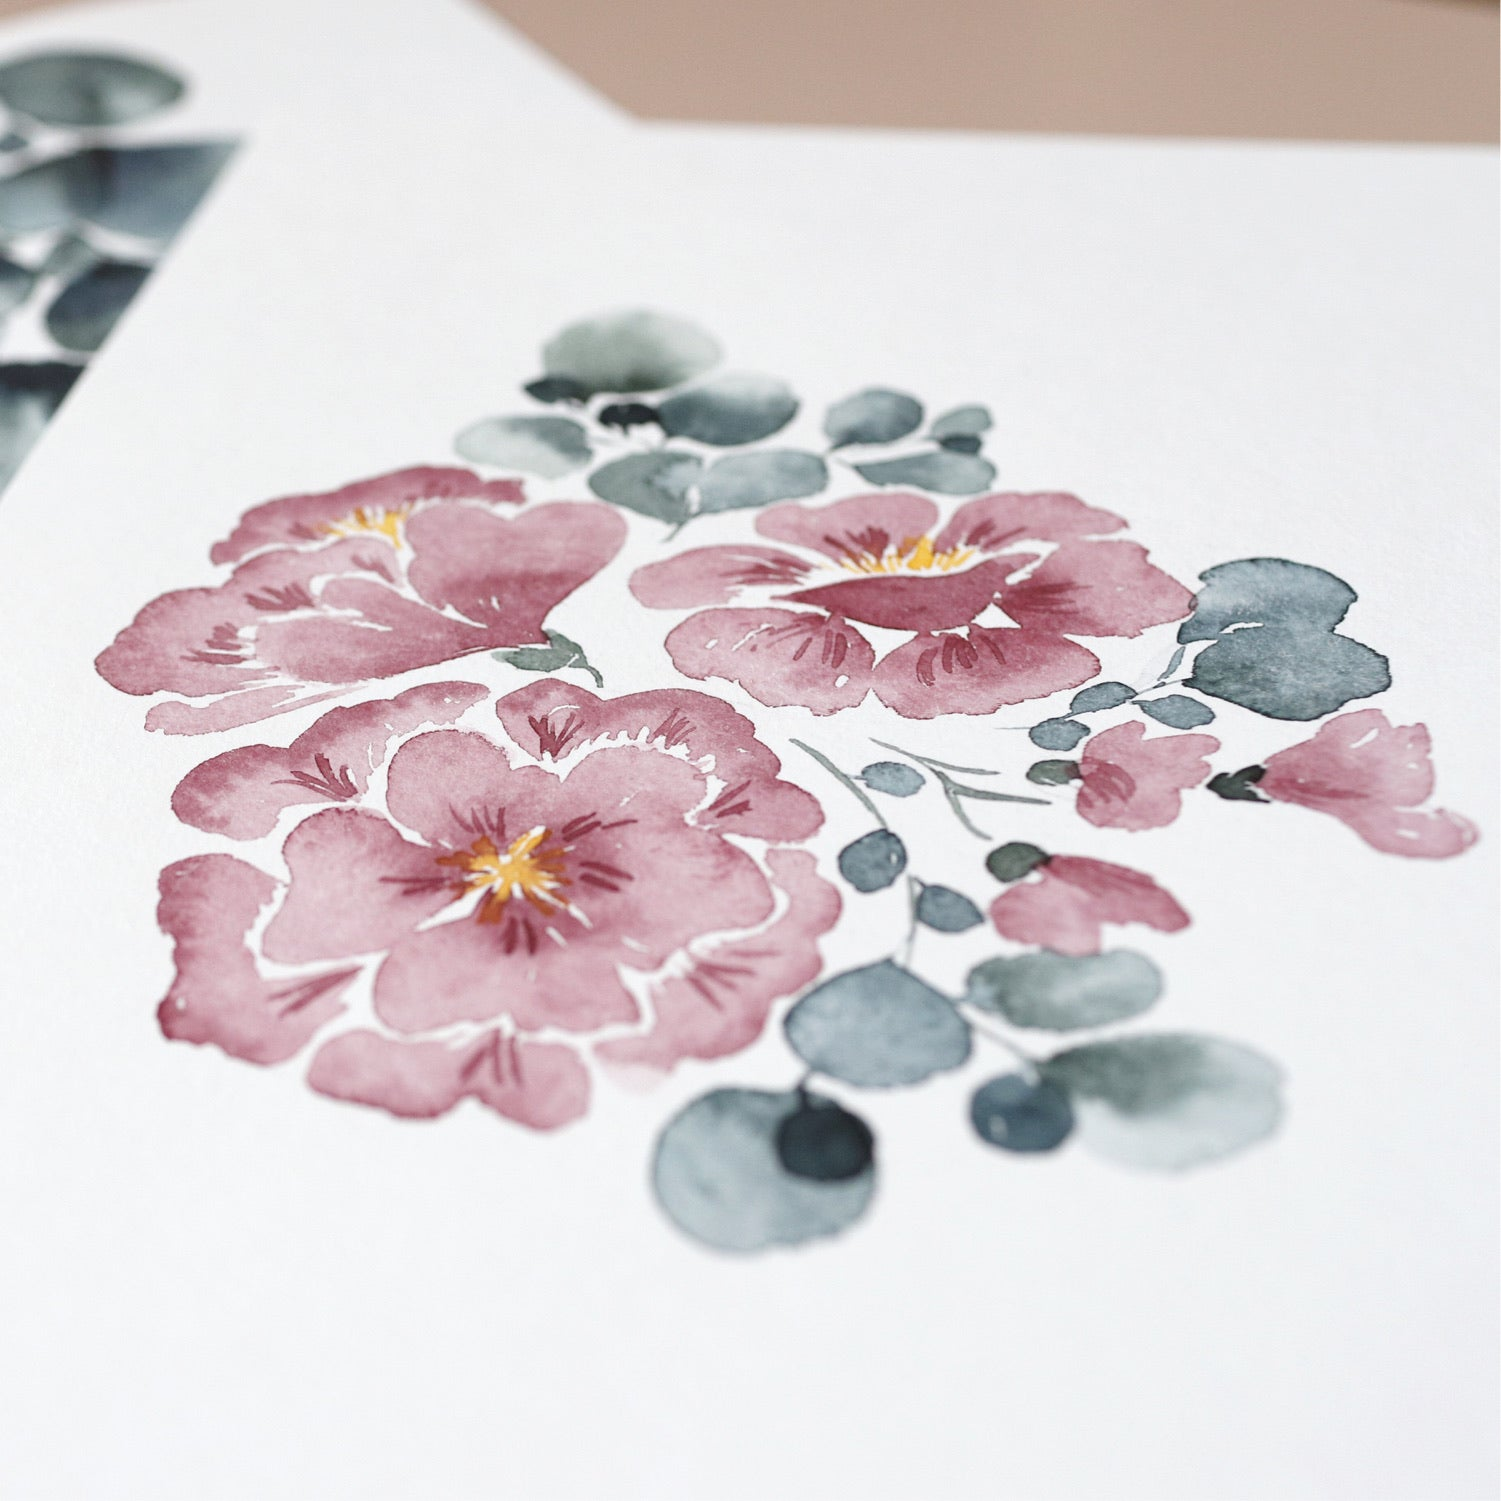 Online-Workshop ohne Material: Watercolor Eukalyptus-Bloom